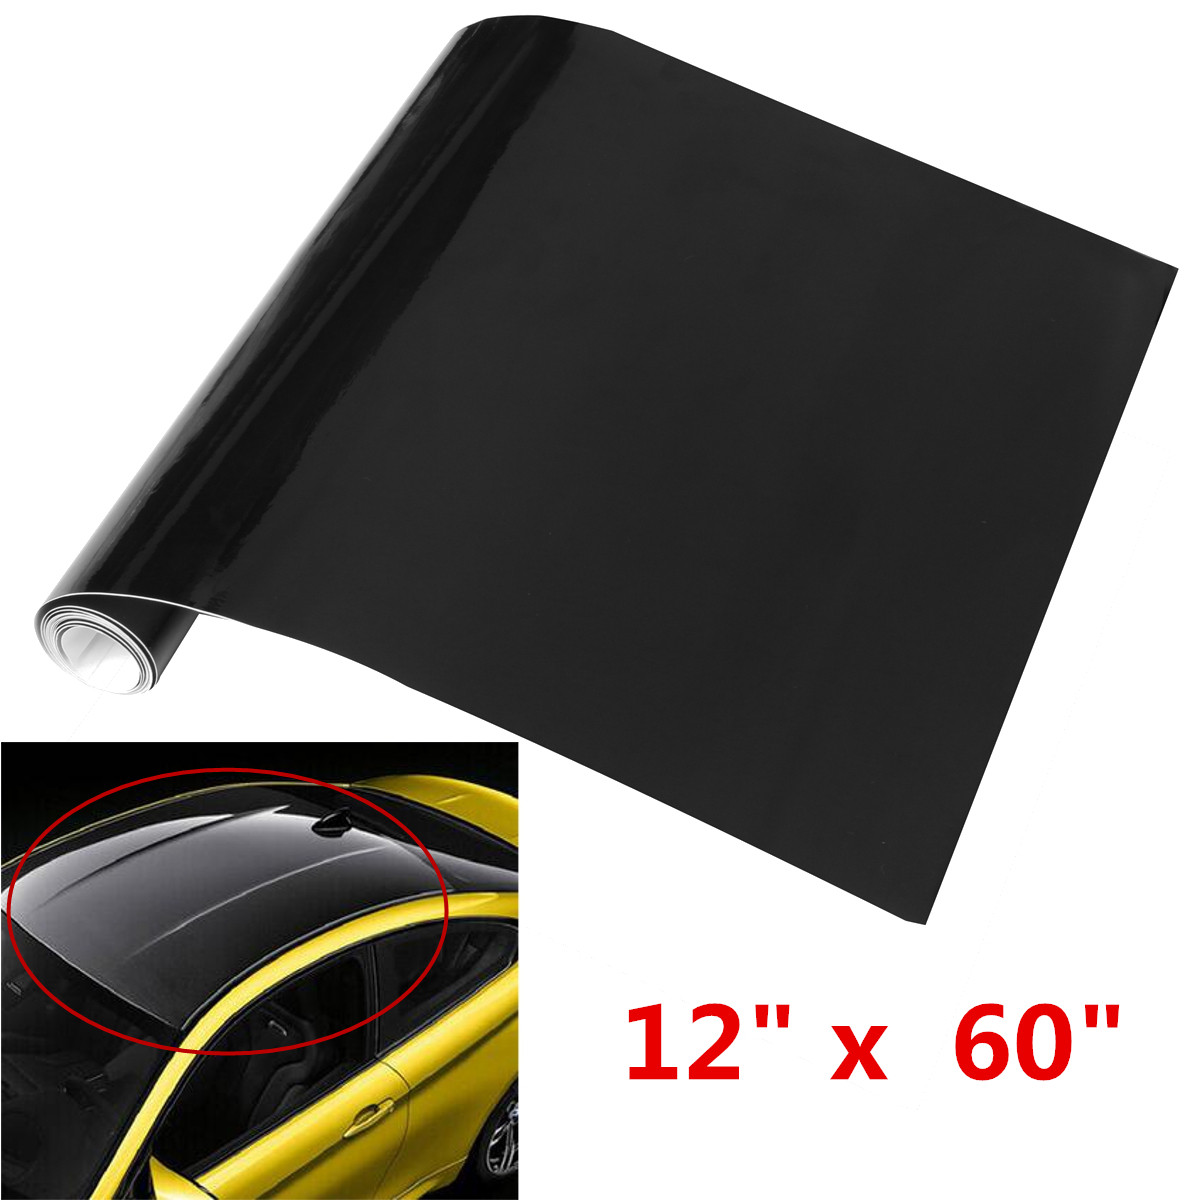 Car Wrap Roll Reflective Sticker Decal Release Air Film Bubble Gloss Vinyl Black DIY Car Styling Exterior Accessories 12*60inch